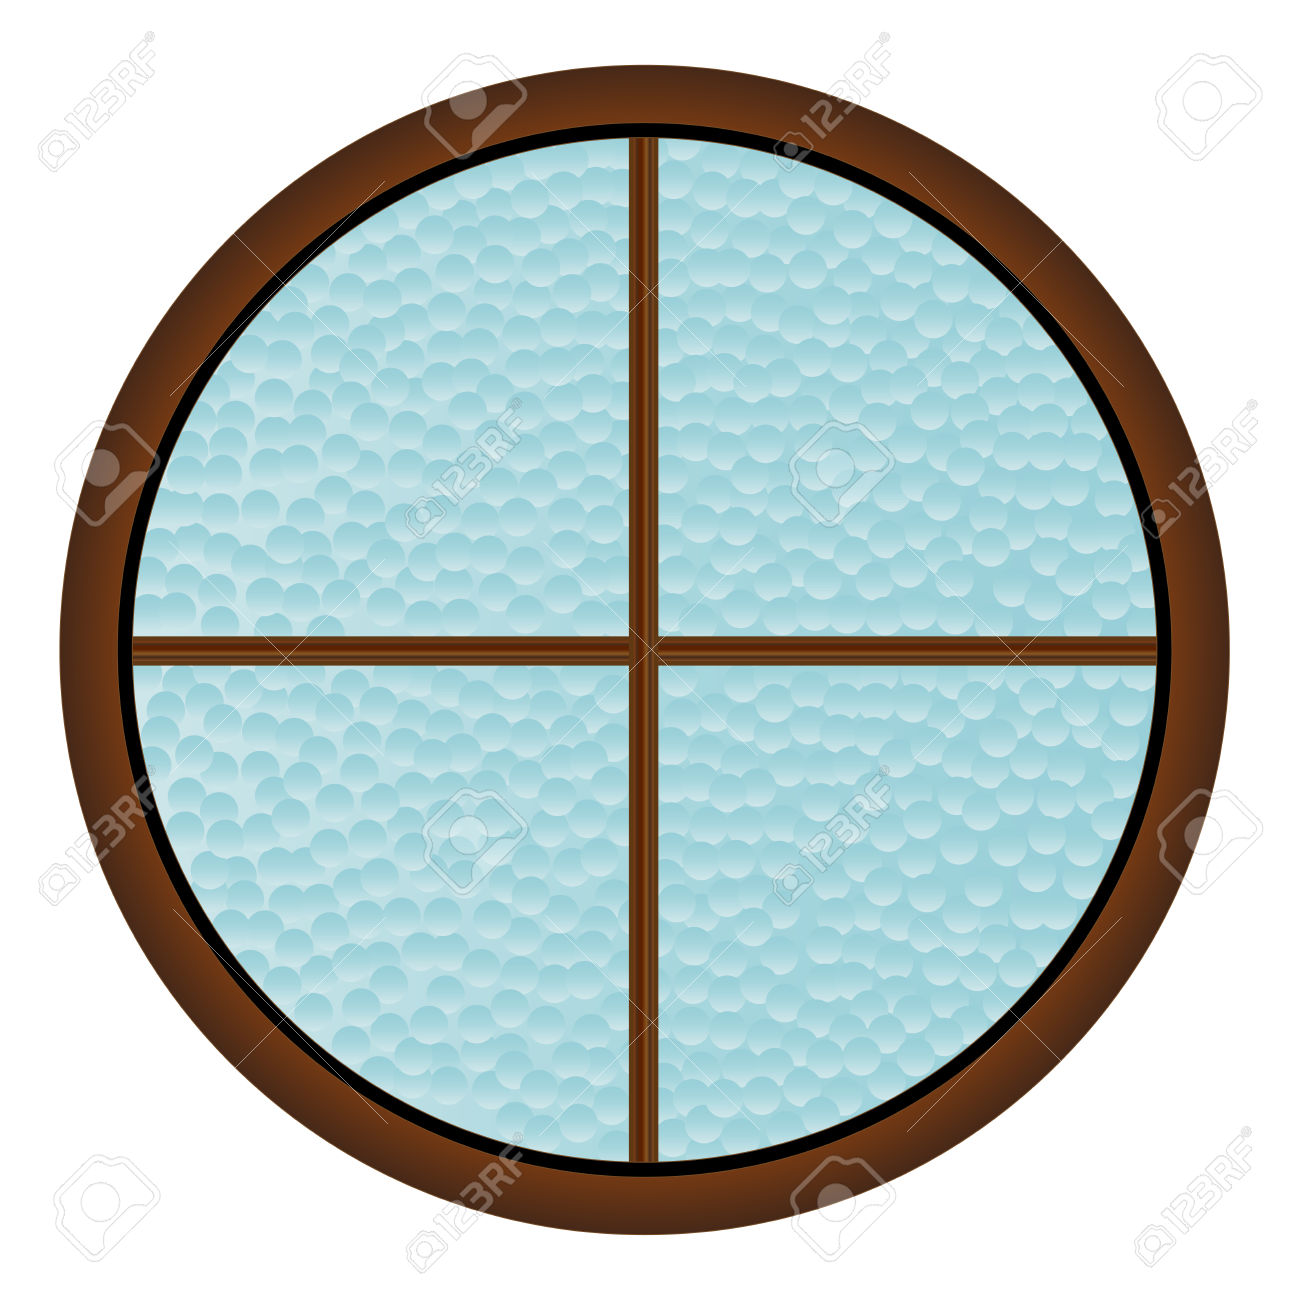 A Round Window With Hammered Bathroom Glass Royalty Free Cliparts.